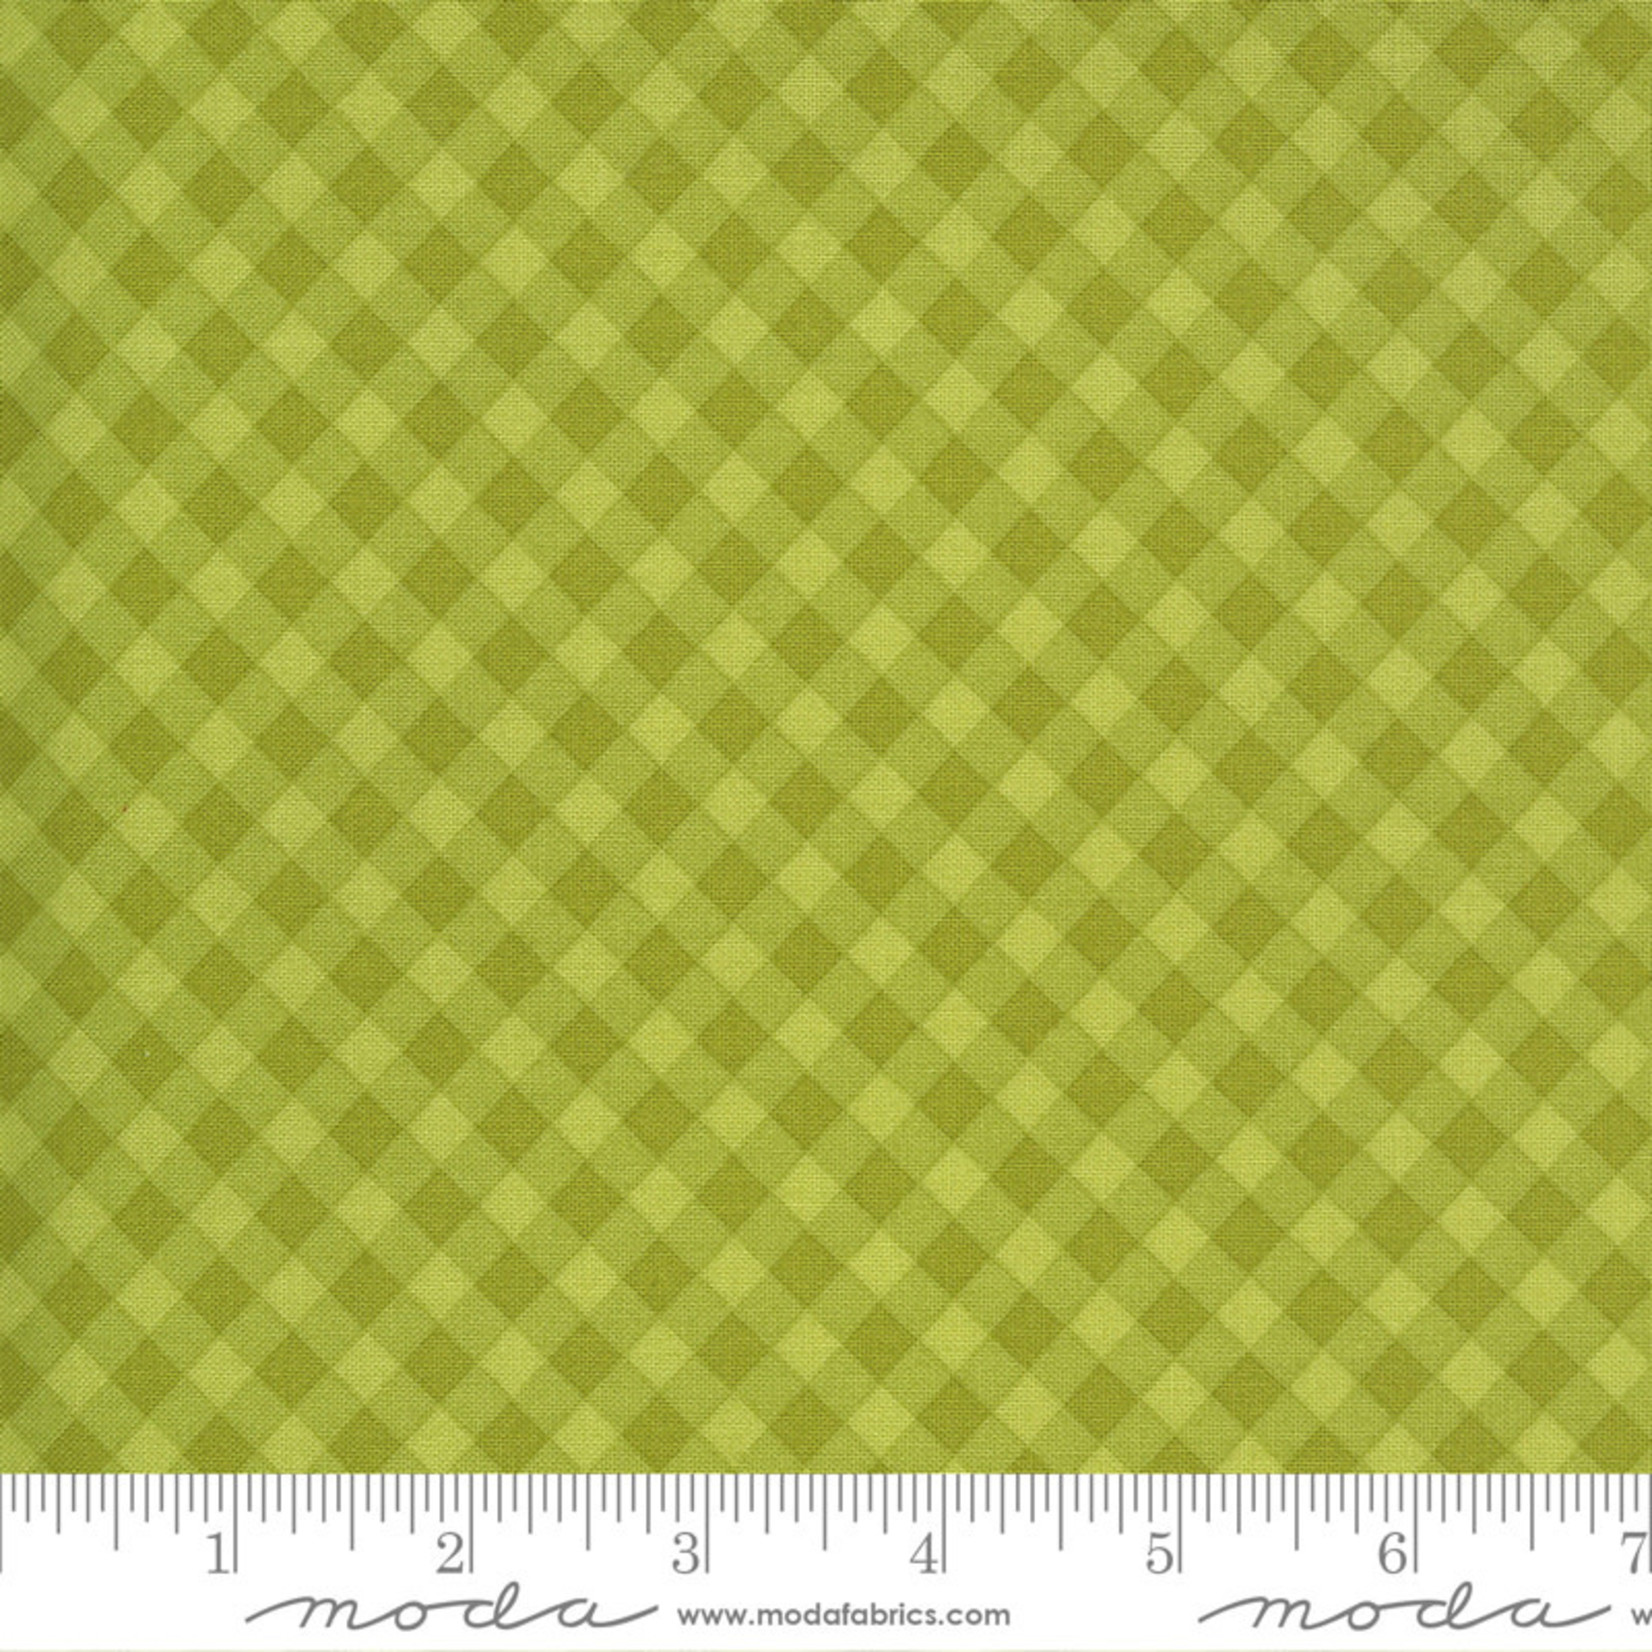 Sweetwater Spring Chicken, Gingham, Green 55523-13 $0.20 per cm or $20/m